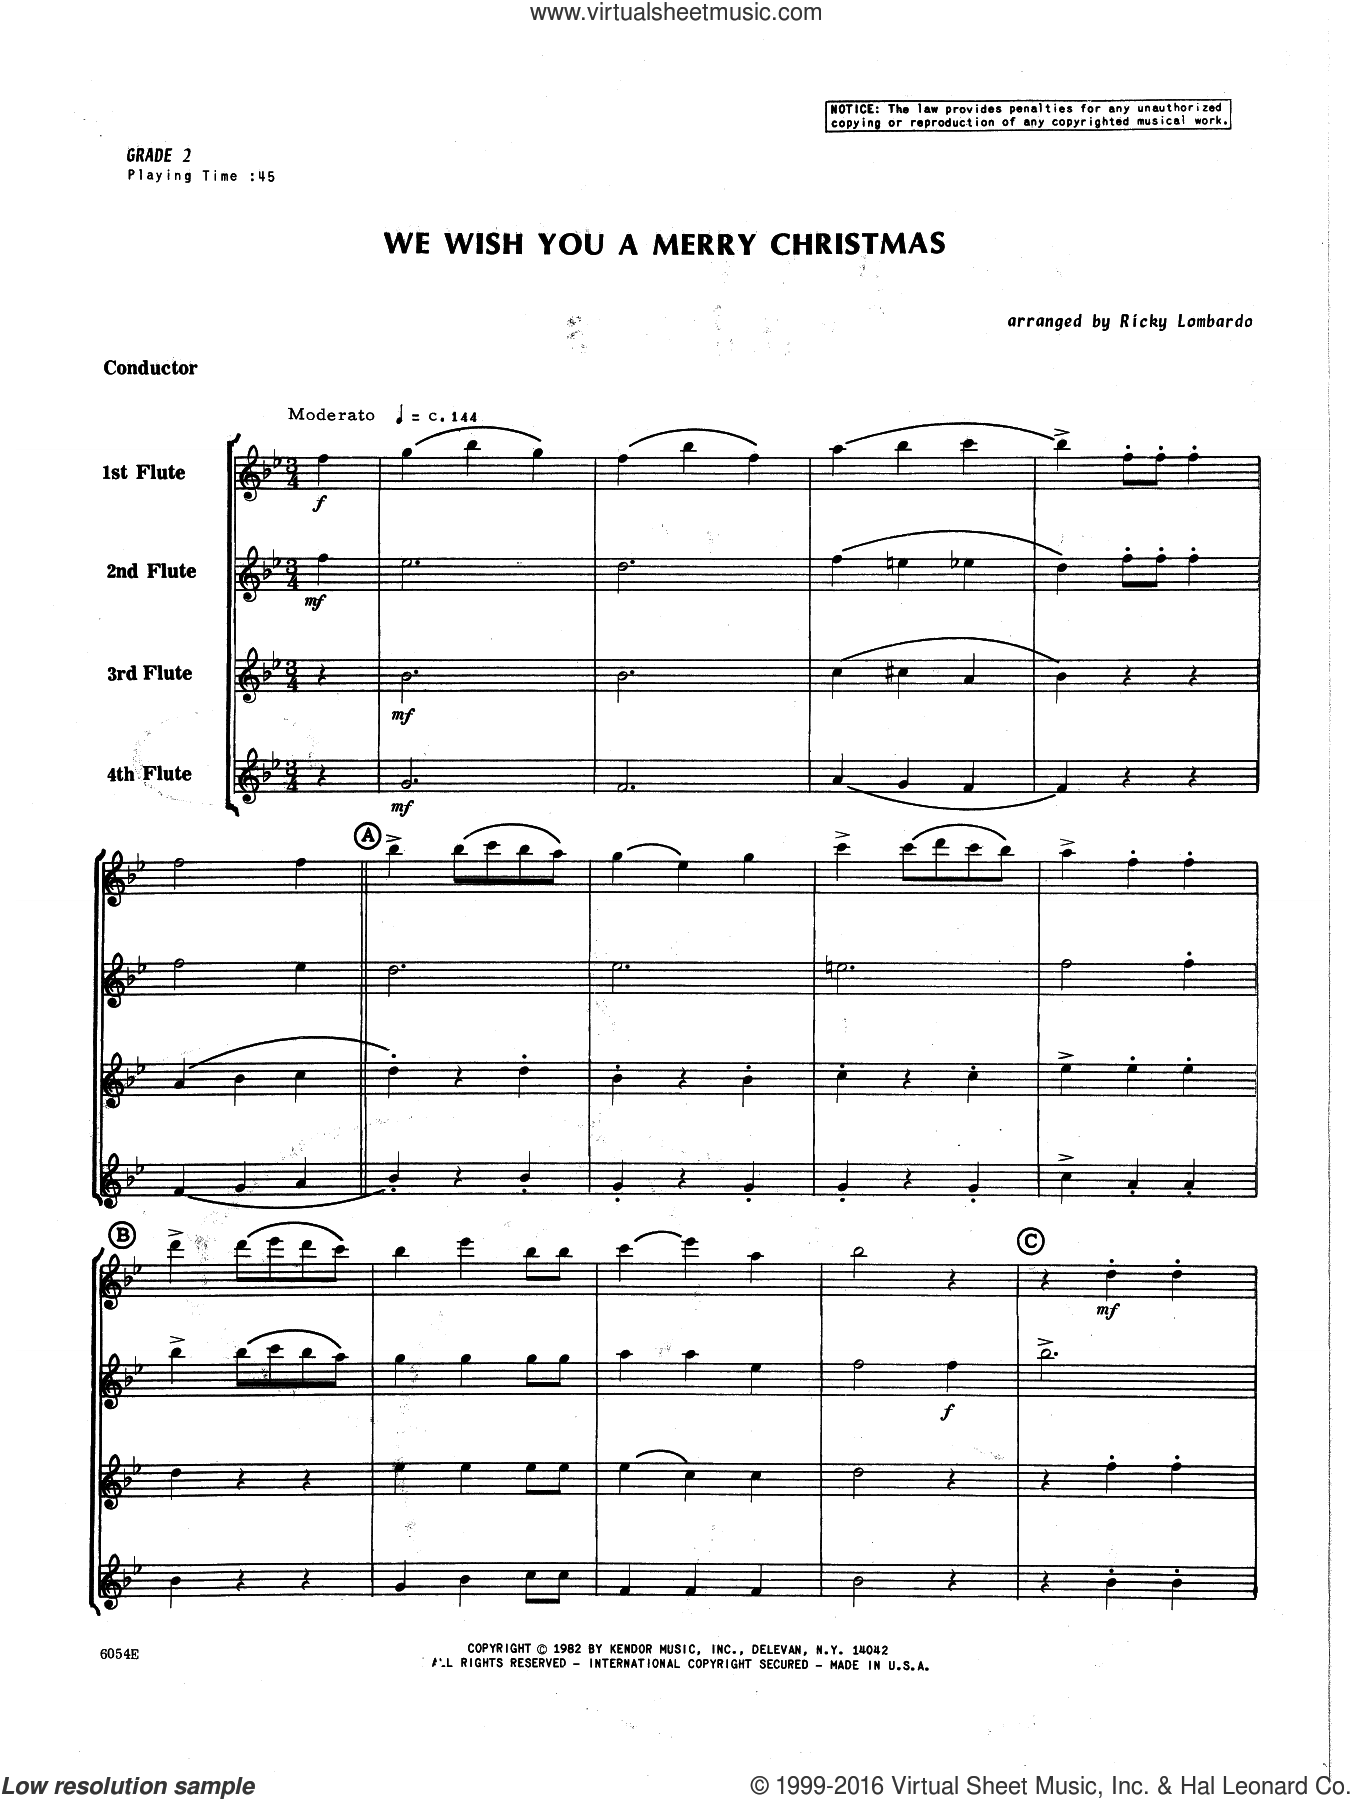 We Wish You A Merry Christmas (COMPLETE) sheet music for flute quartet by Lombardo. Score Image Preview.